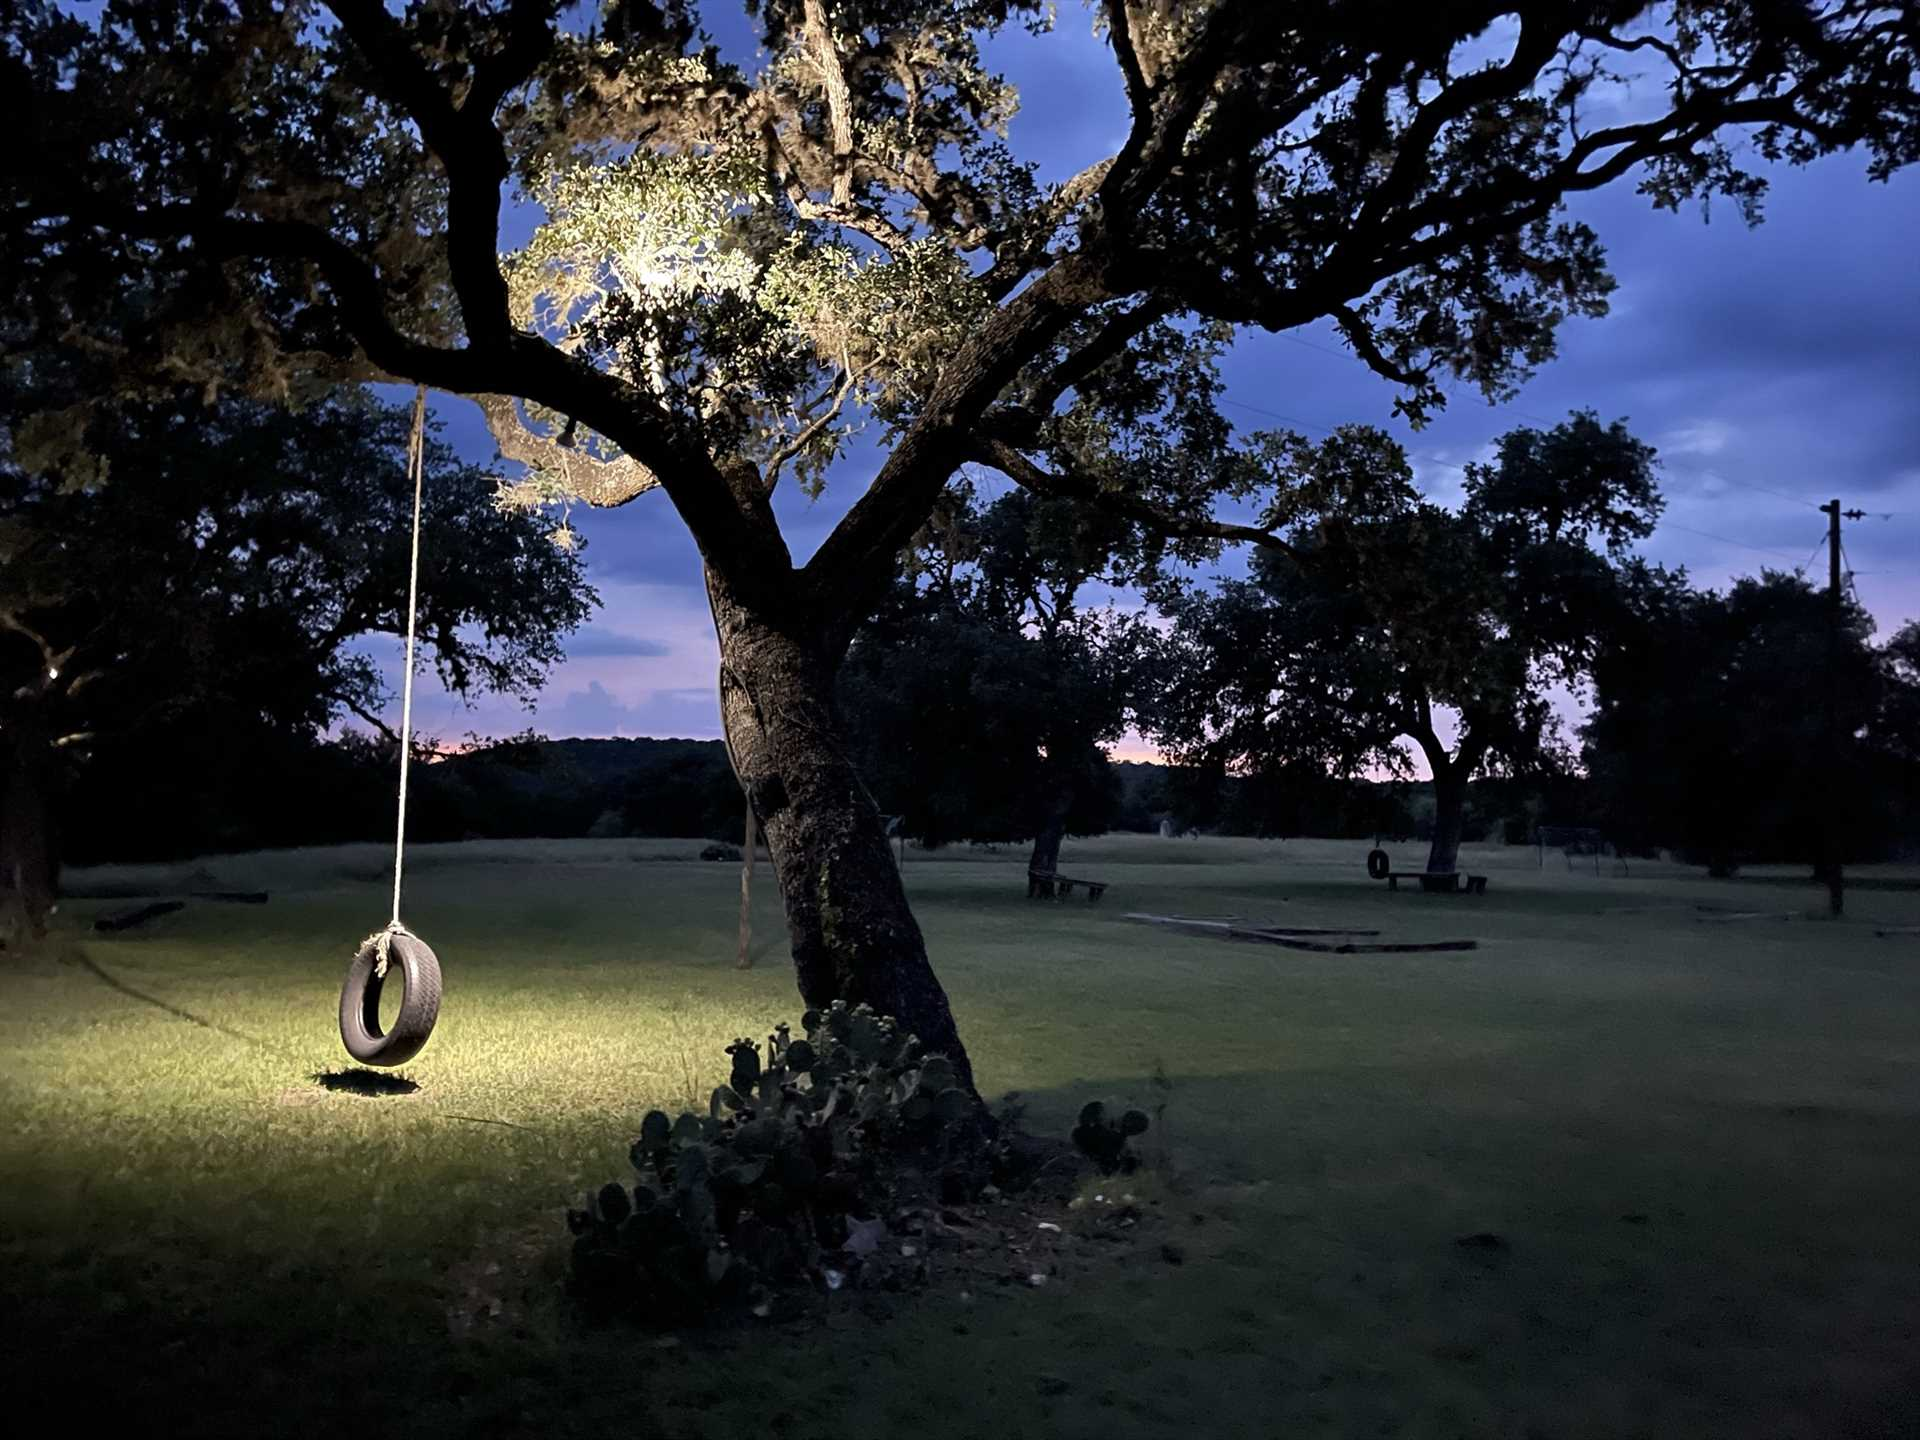 Kick your legs up for some old-fashioned fun on the tire swing...it's even lit up so you can enjoy it at night!